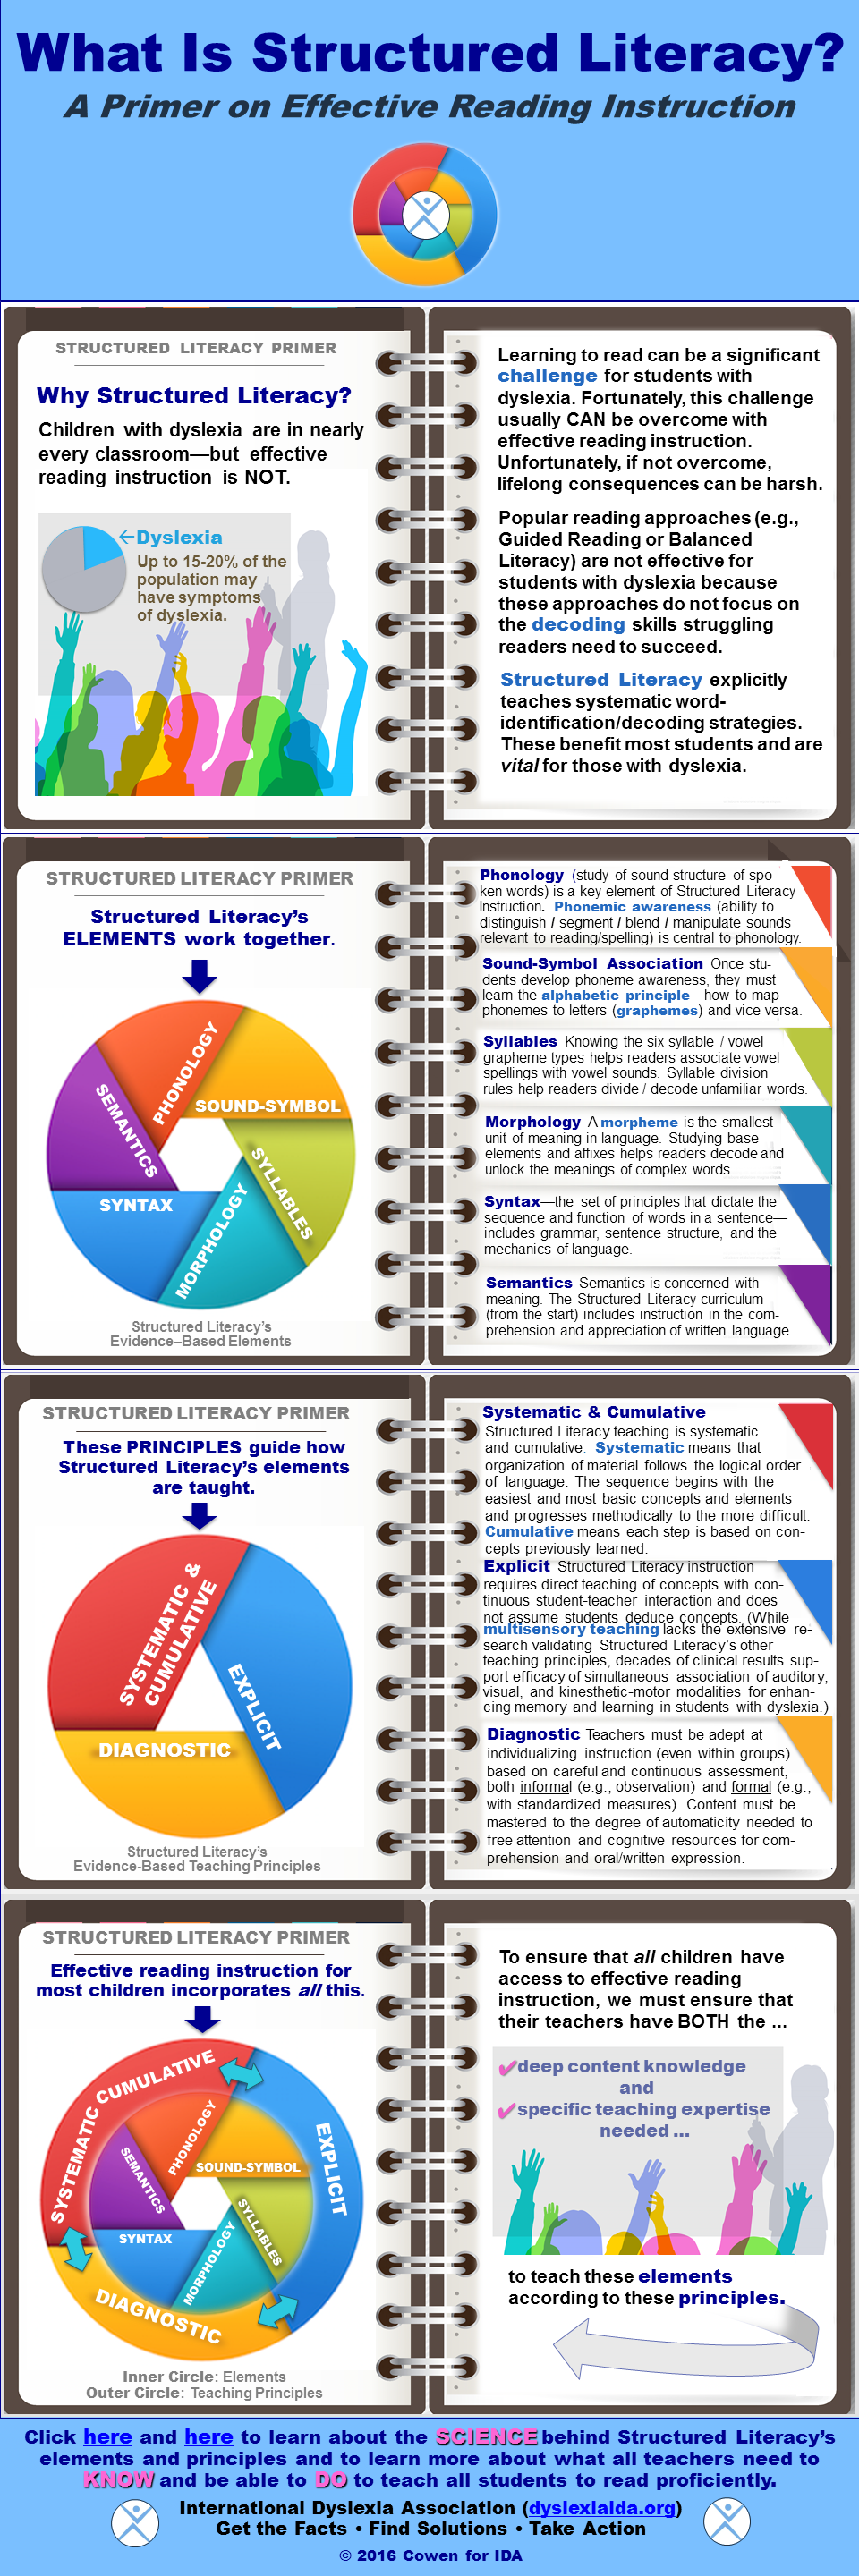 An infographic demonstrating the necessary components for a literacy program that is structured for